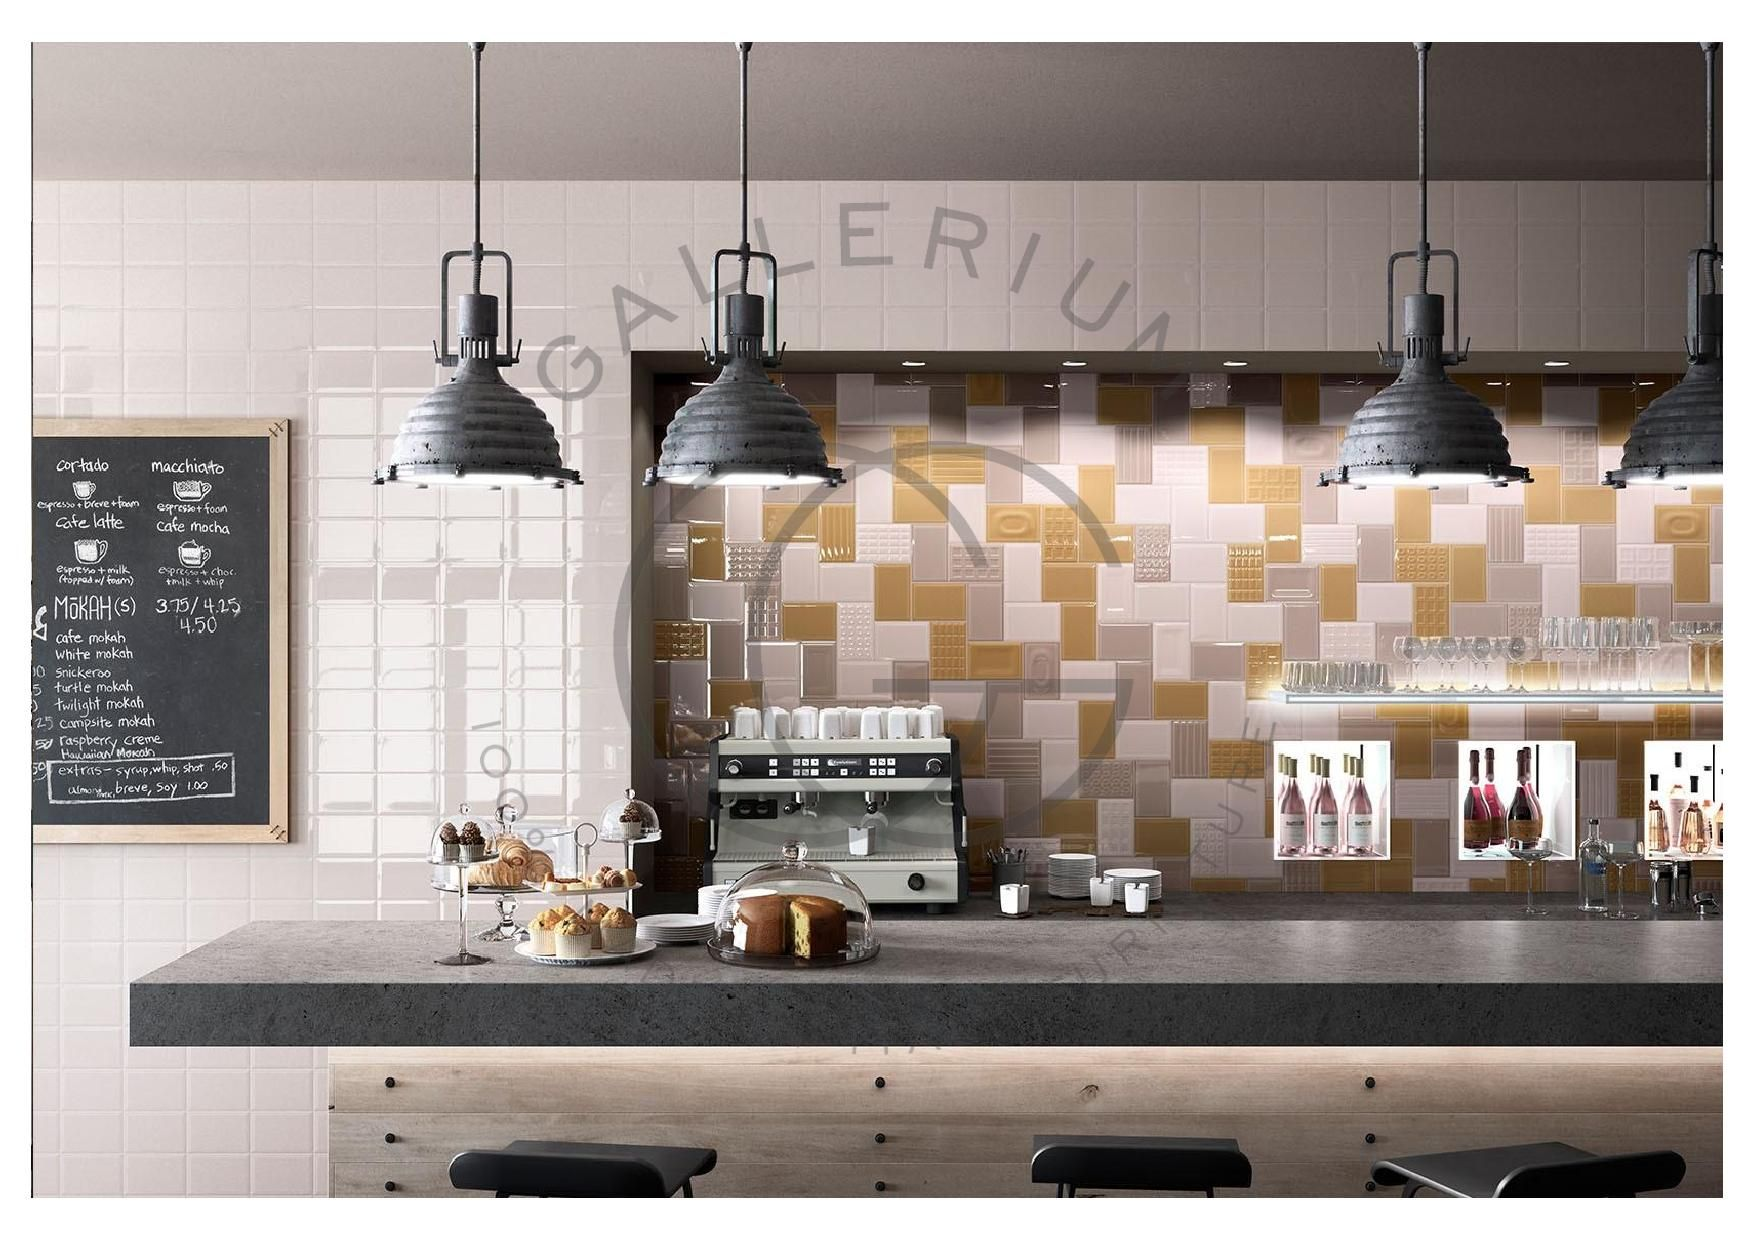 Floor And Wall Tile Concepts From Imola Ceramica, Italy